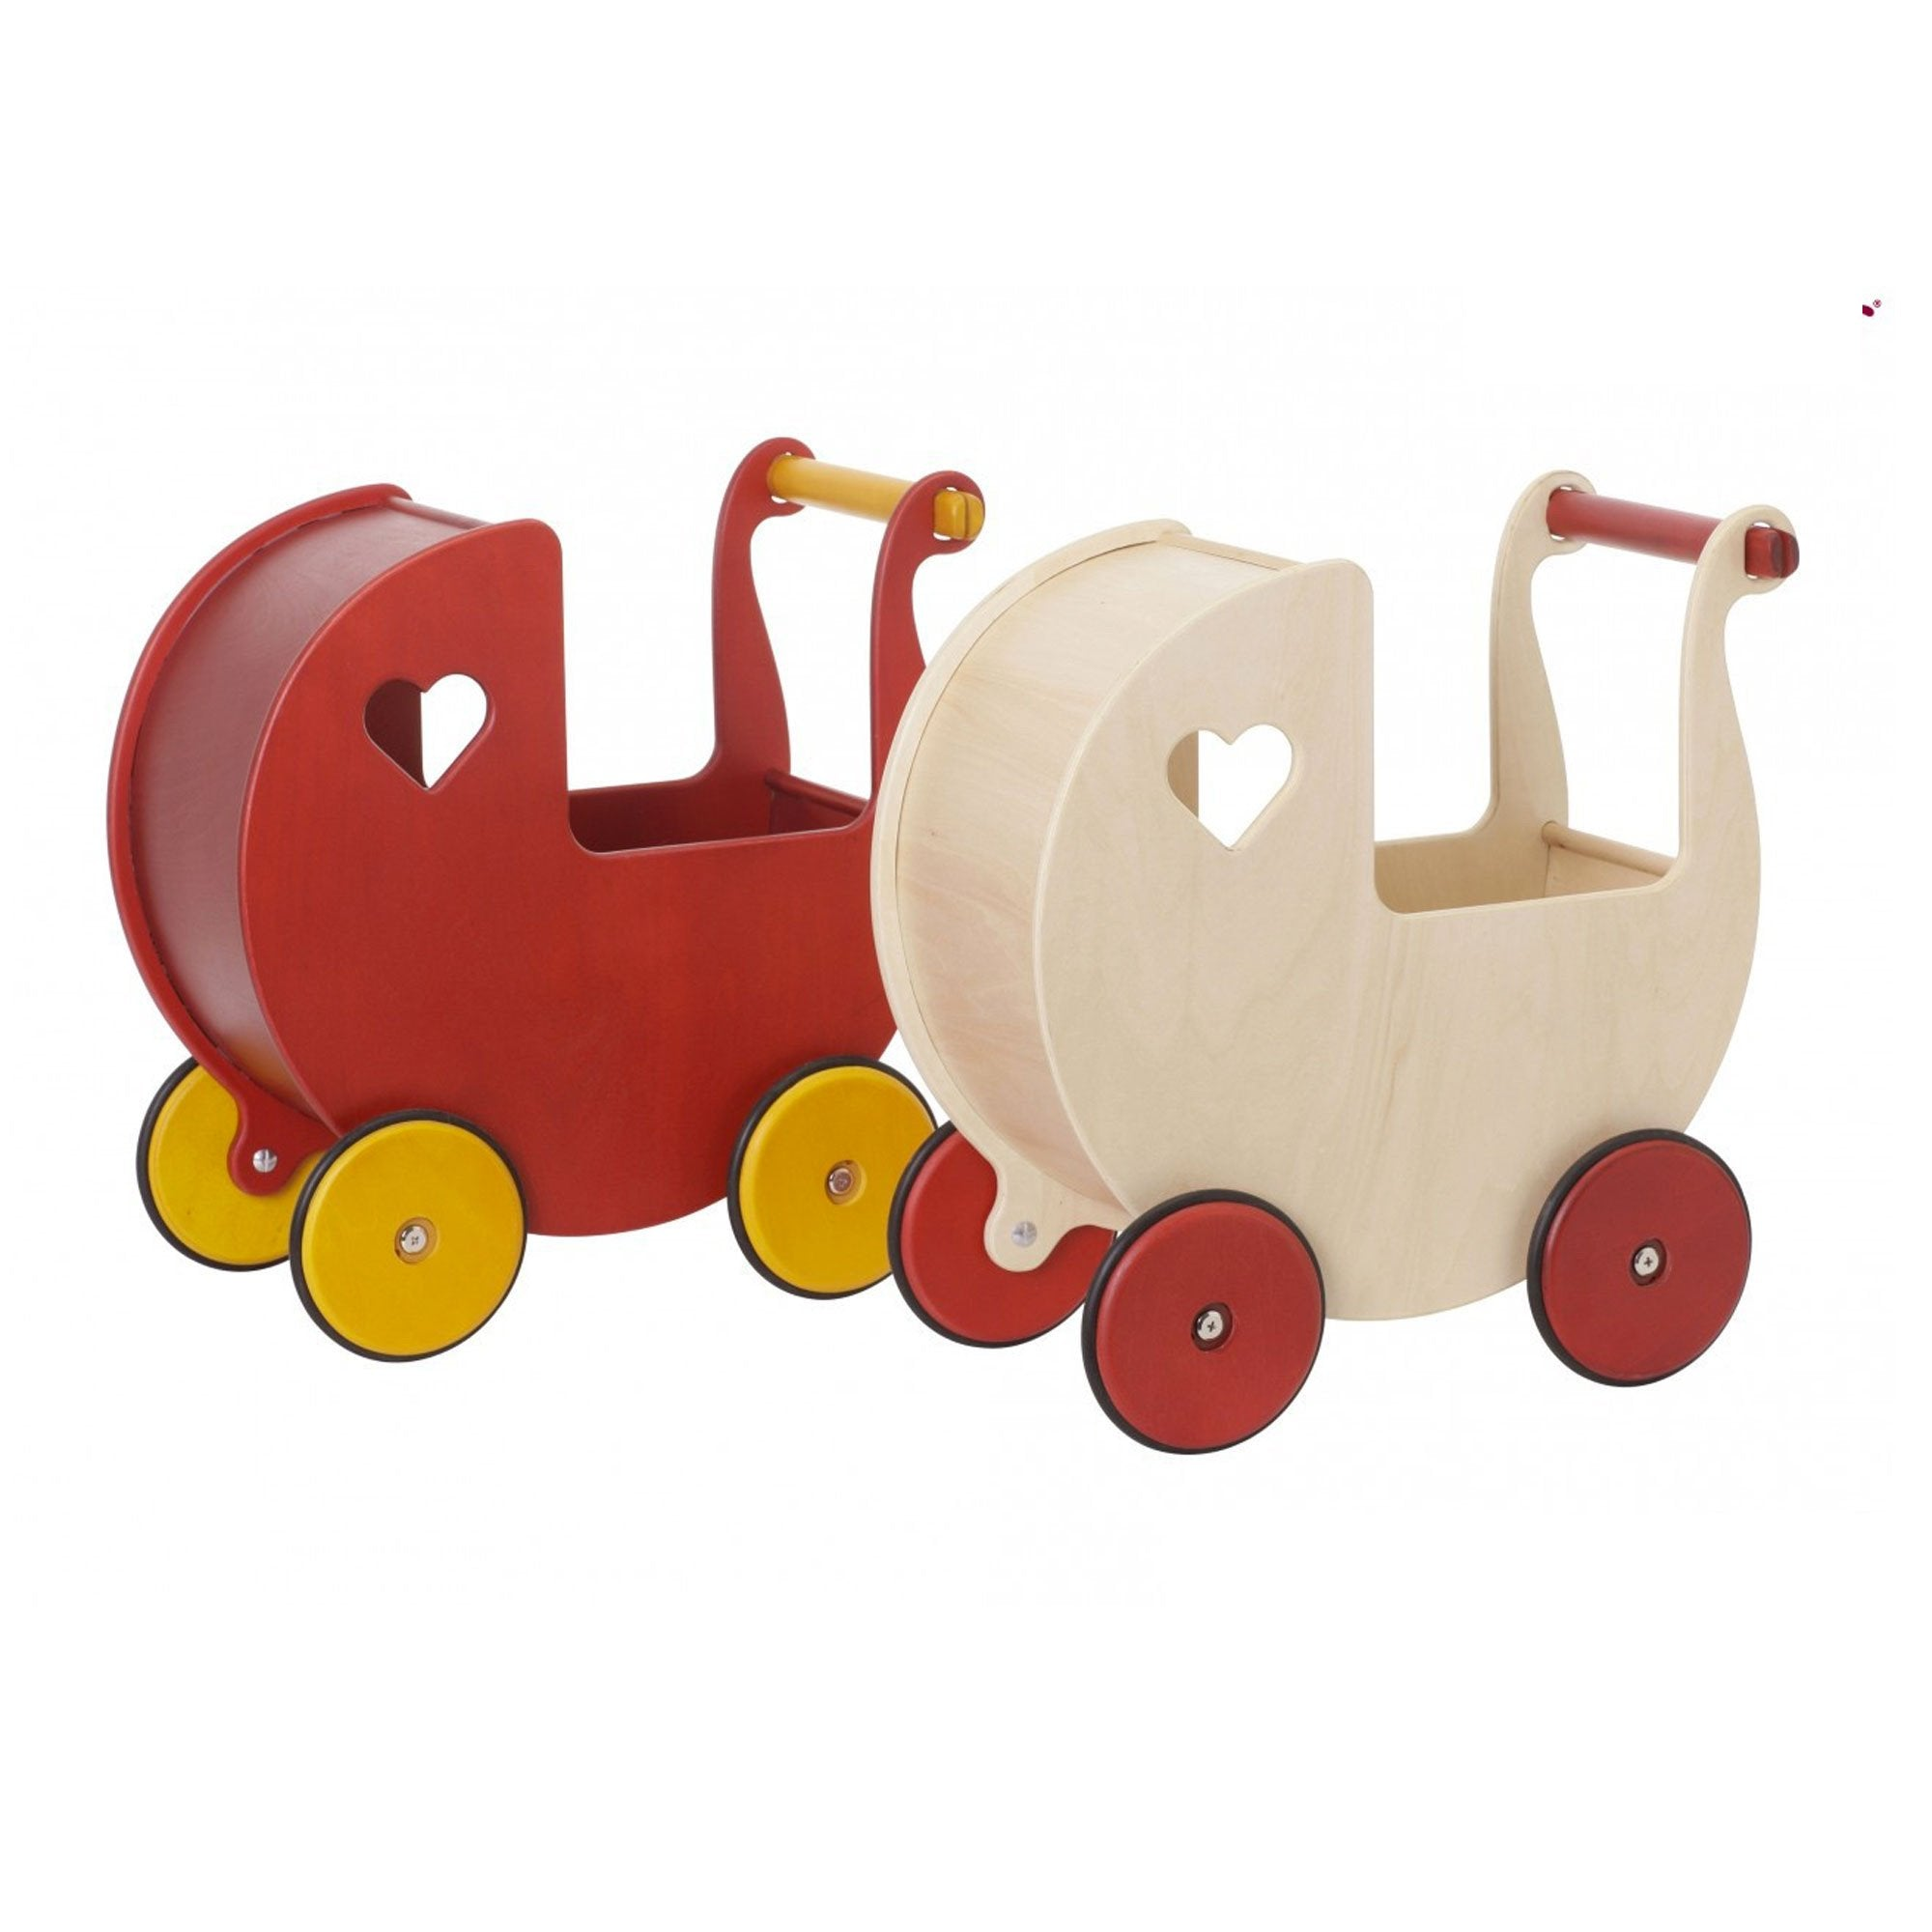 Moover Dolls Pram Moover Toys Pretend Play at Little Earth Nest Eco Shop